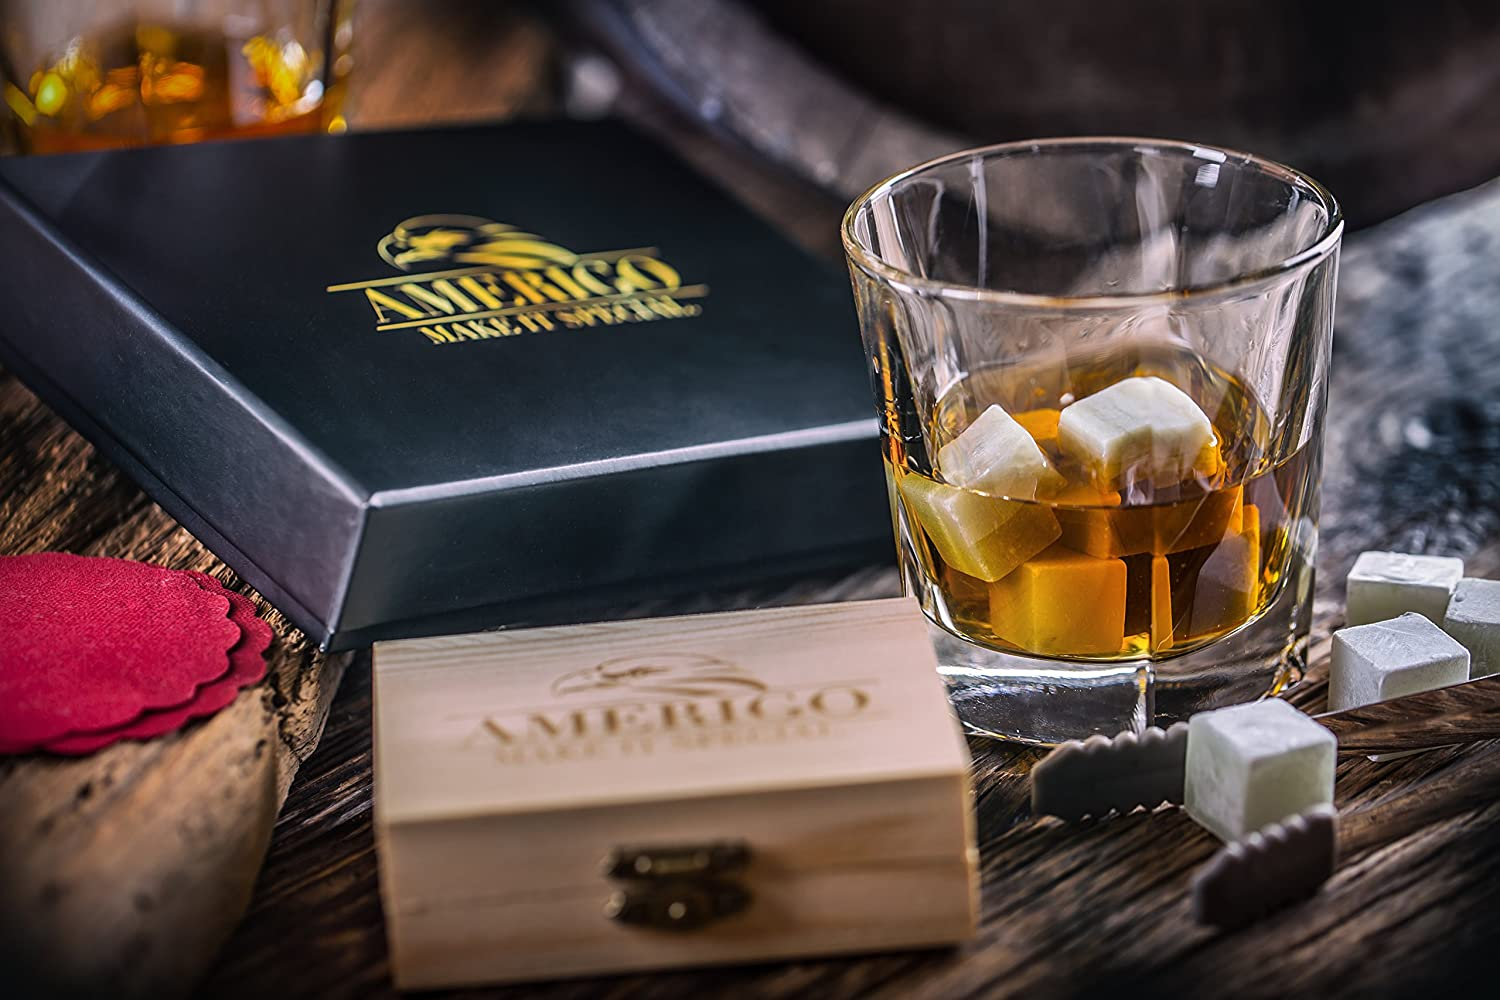 Coffret cadeau homme original et pas cher : Ensemble de Cadeaux Whisky Pierres par Amerigo - Ensemble de 9 Whisky Rocks - Whisky Stones Gift Set - Whisky Glacon Granit - Pinces en Acier et 2 Sous-verres